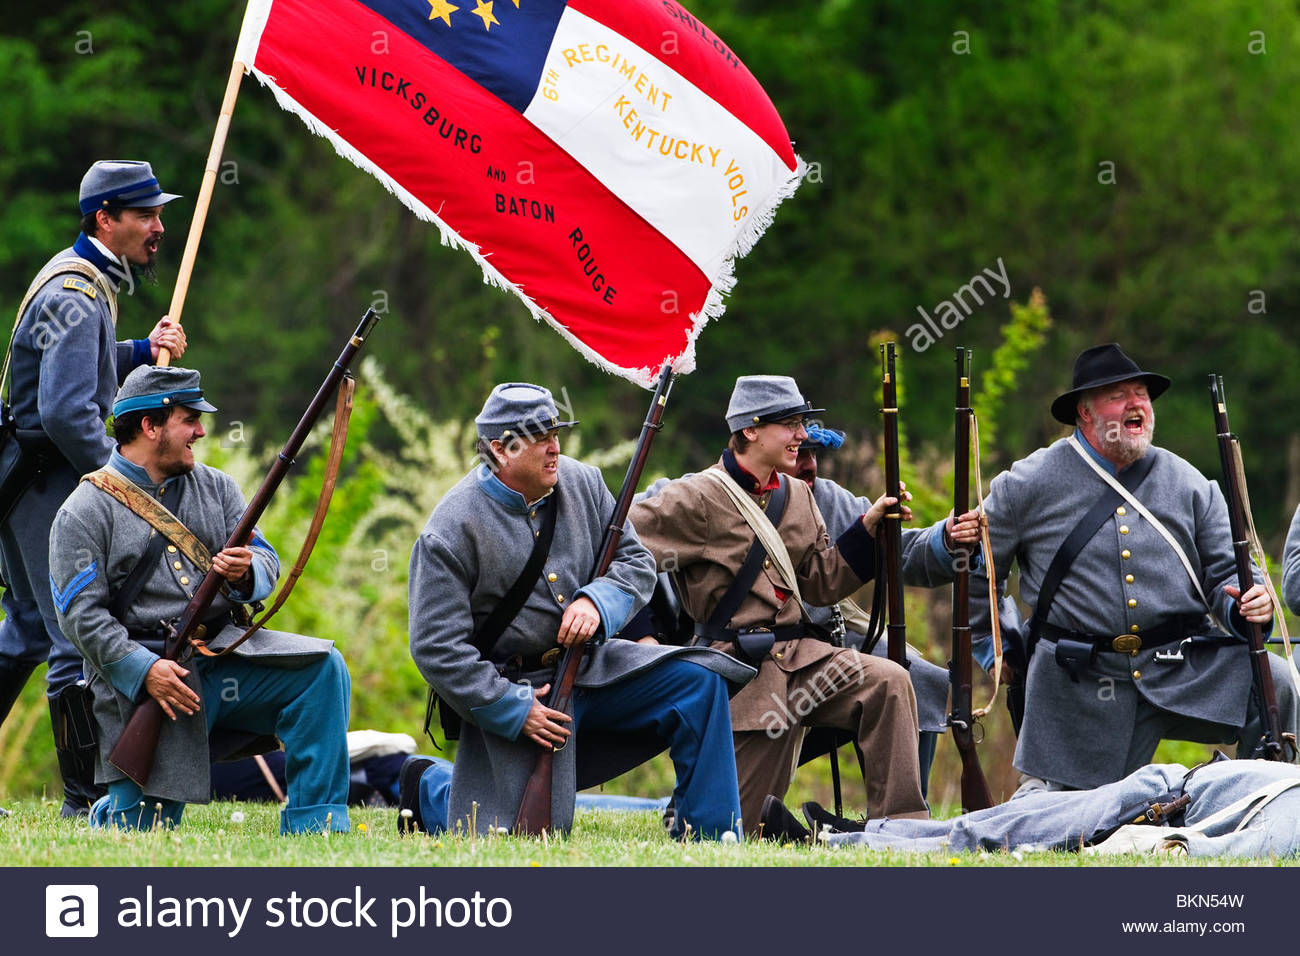 Confederate reenactor soldiers on the battle field during a Civil War reenactment - Stock Image